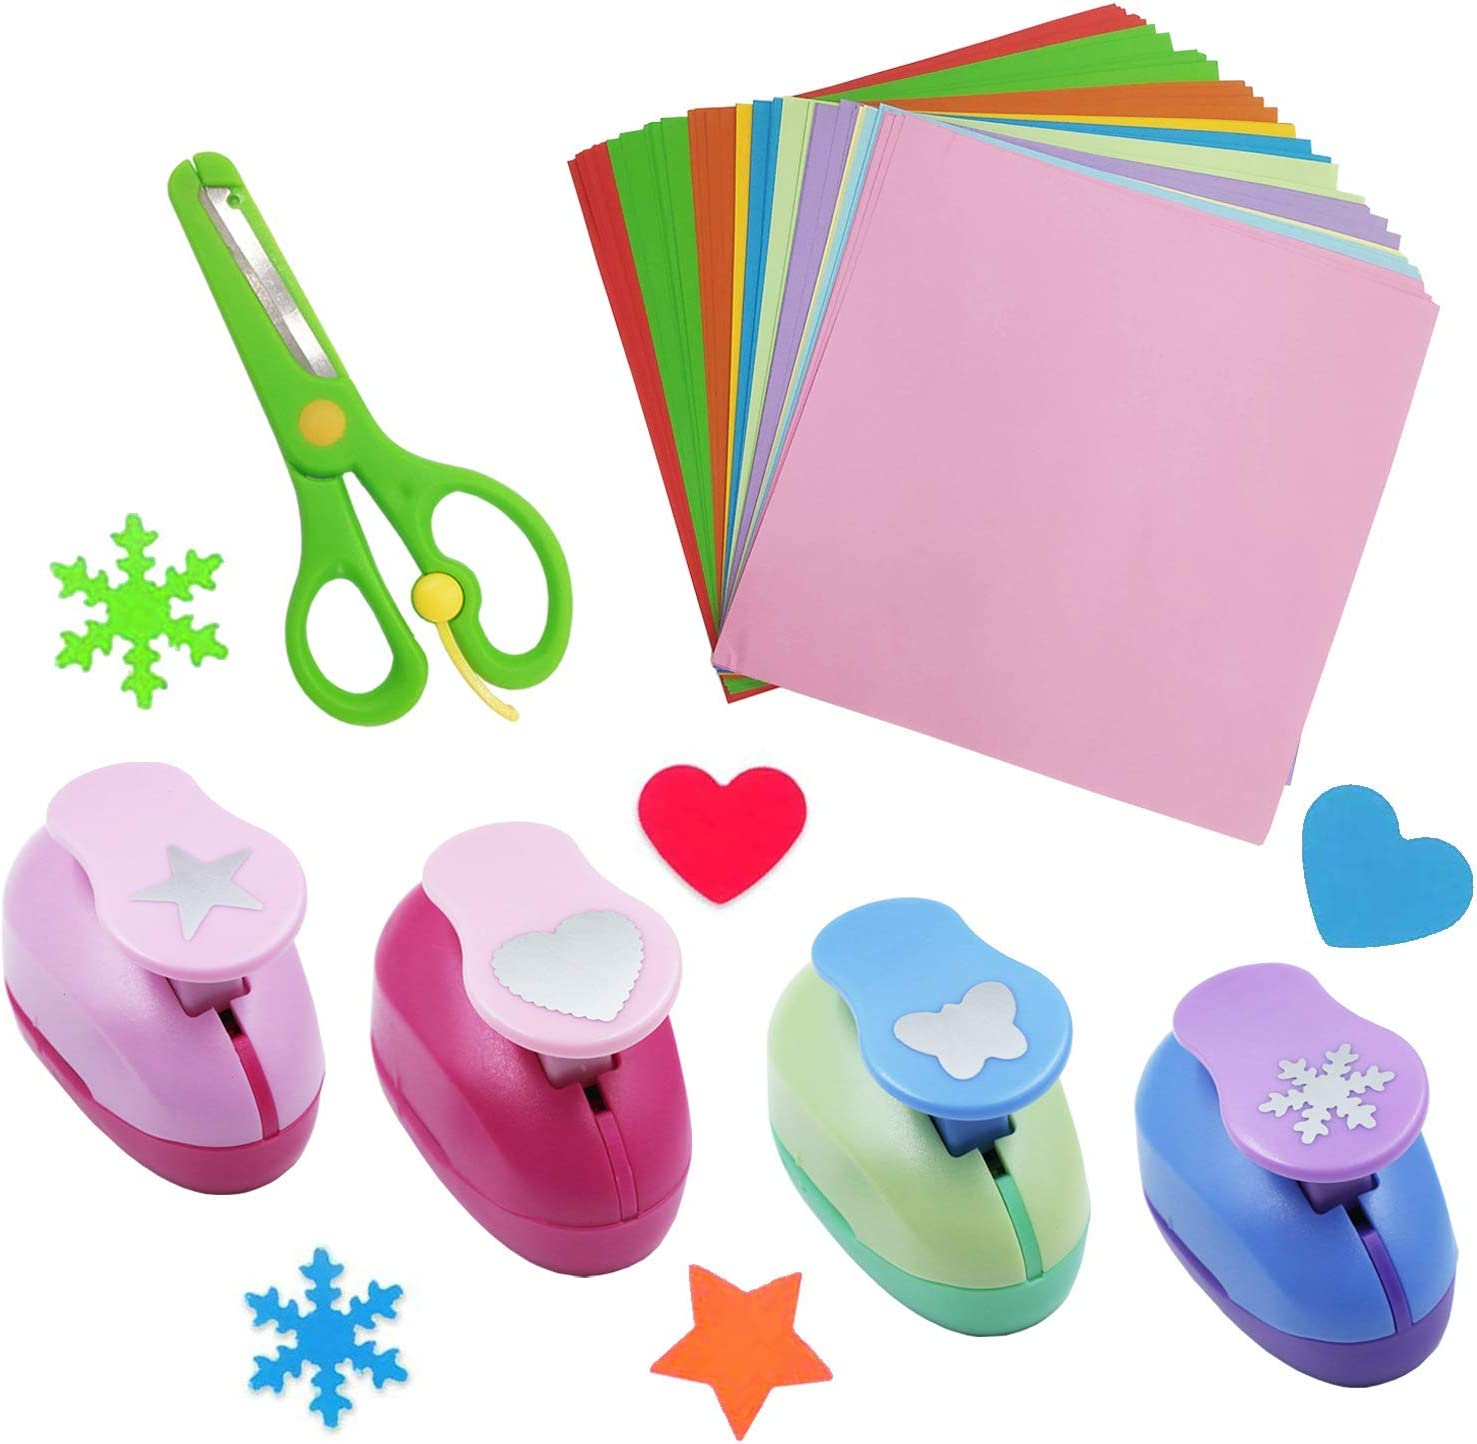 Origami Paper Set Paper Crafts Supplies with 100Pcs Sheets Square Origami 4Pcs Craft Punches 1Pc Children Training Scissor for DIY Paper Cutting and Kid/'s Craft Arts